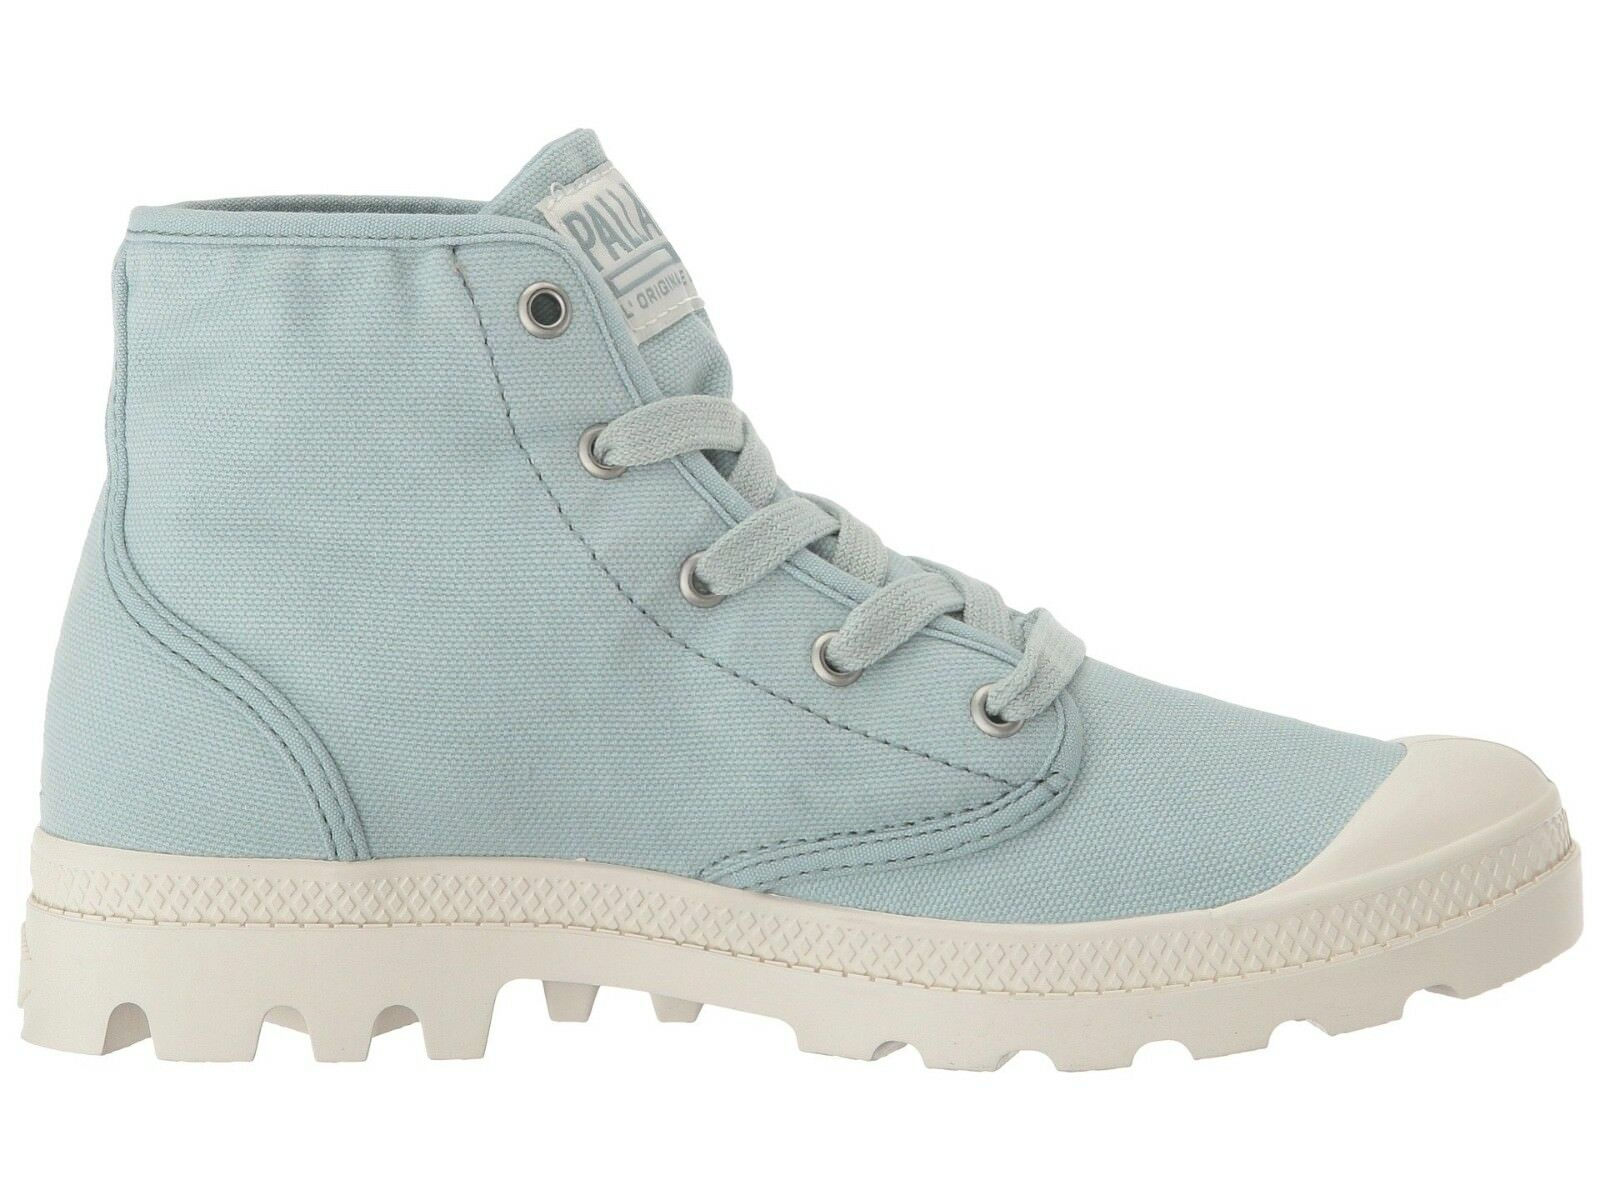 Damenschuhe Palladium Hi Mist/Marshmallow Lace Up Ankle Stiefel